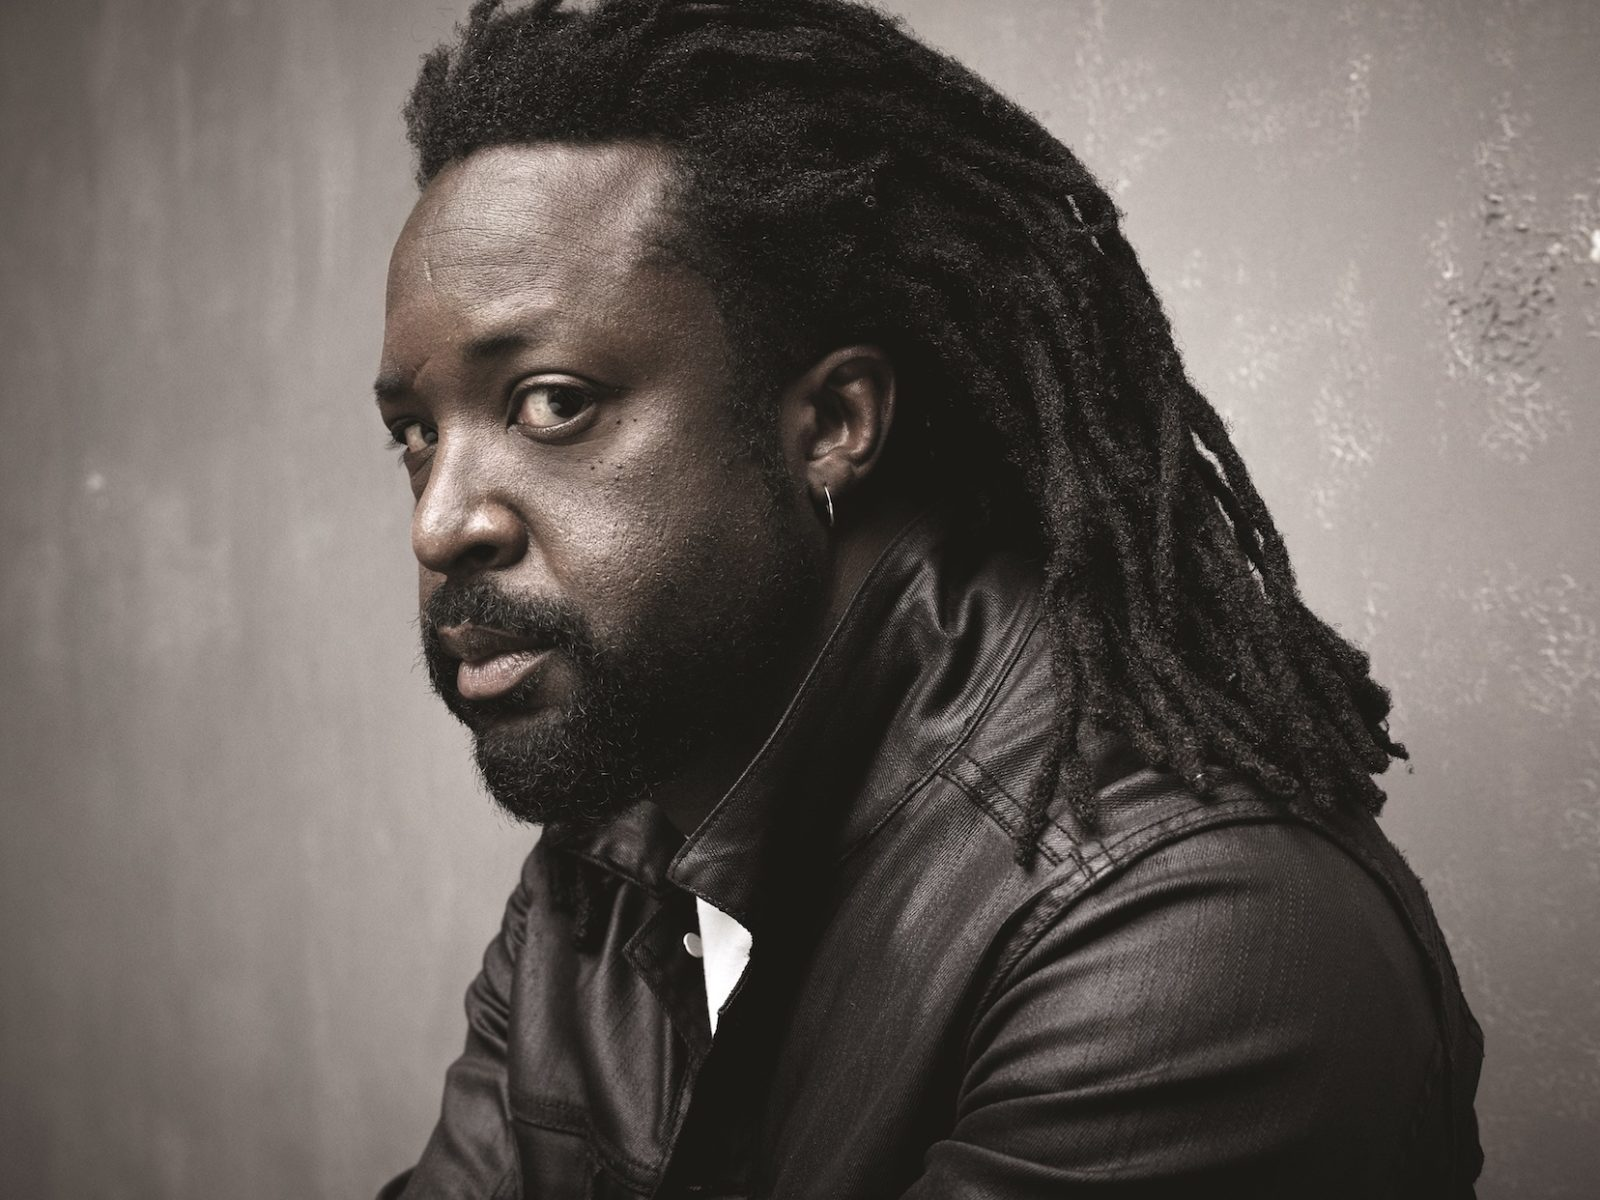 Marlon James (c) Mark Seliger_color - Carla Cain-Walther